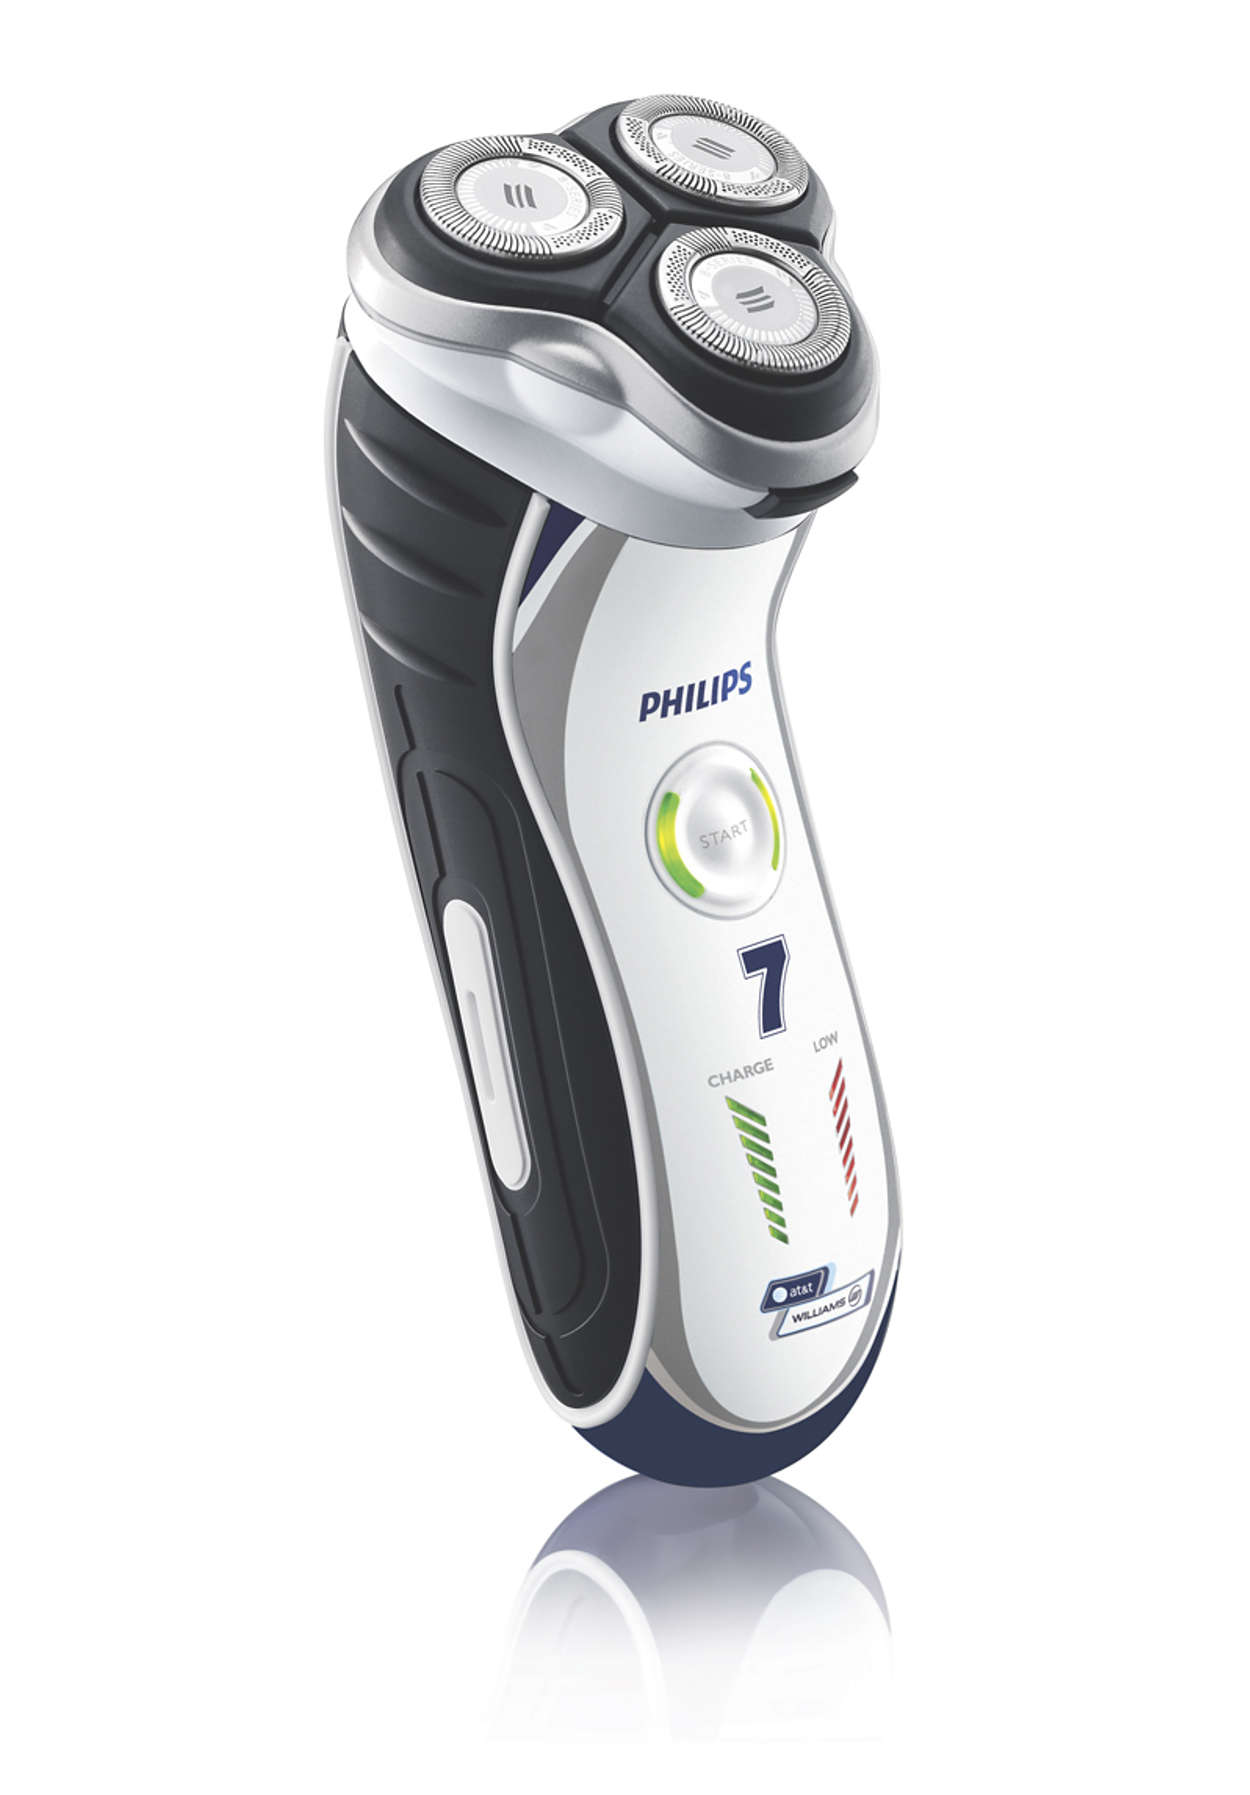 shaver series 3000 electric shaver hq7390 17 philips. Black Bedroom Furniture Sets. Home Design Ideas